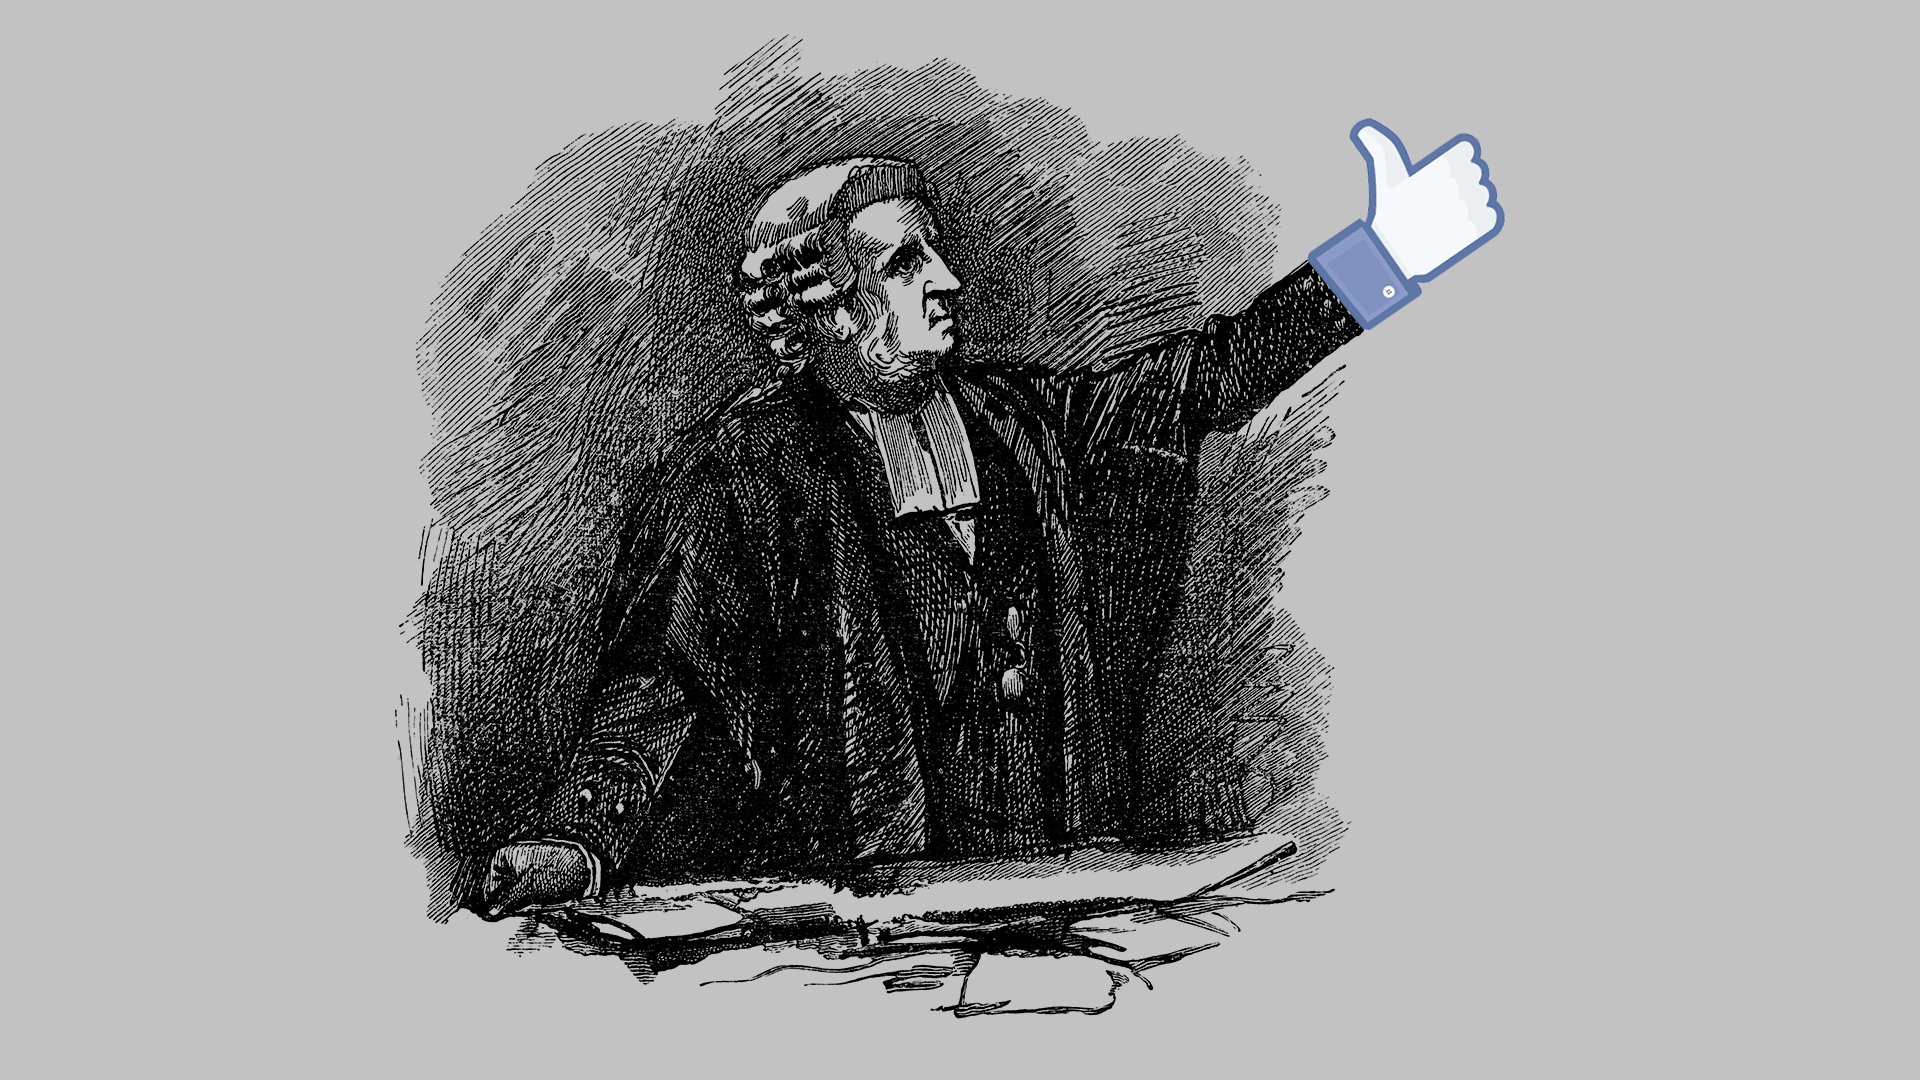 An illustration of a founding father with a Facebook hand for a thumb